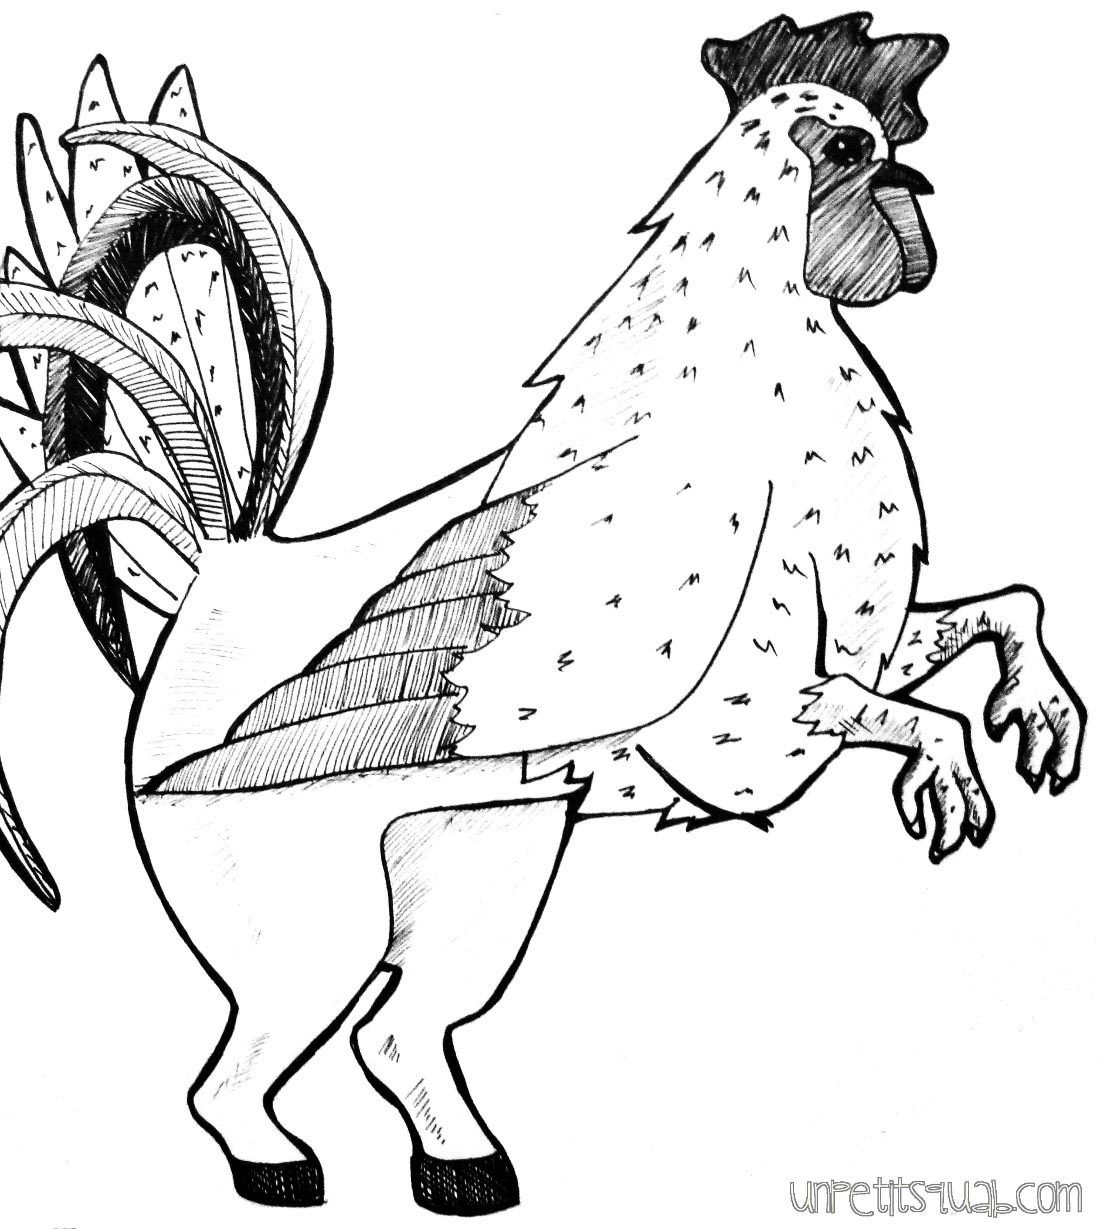 a line drawing of something resembling a hippogriff, but with the bird part as a chicken instead of an eagle